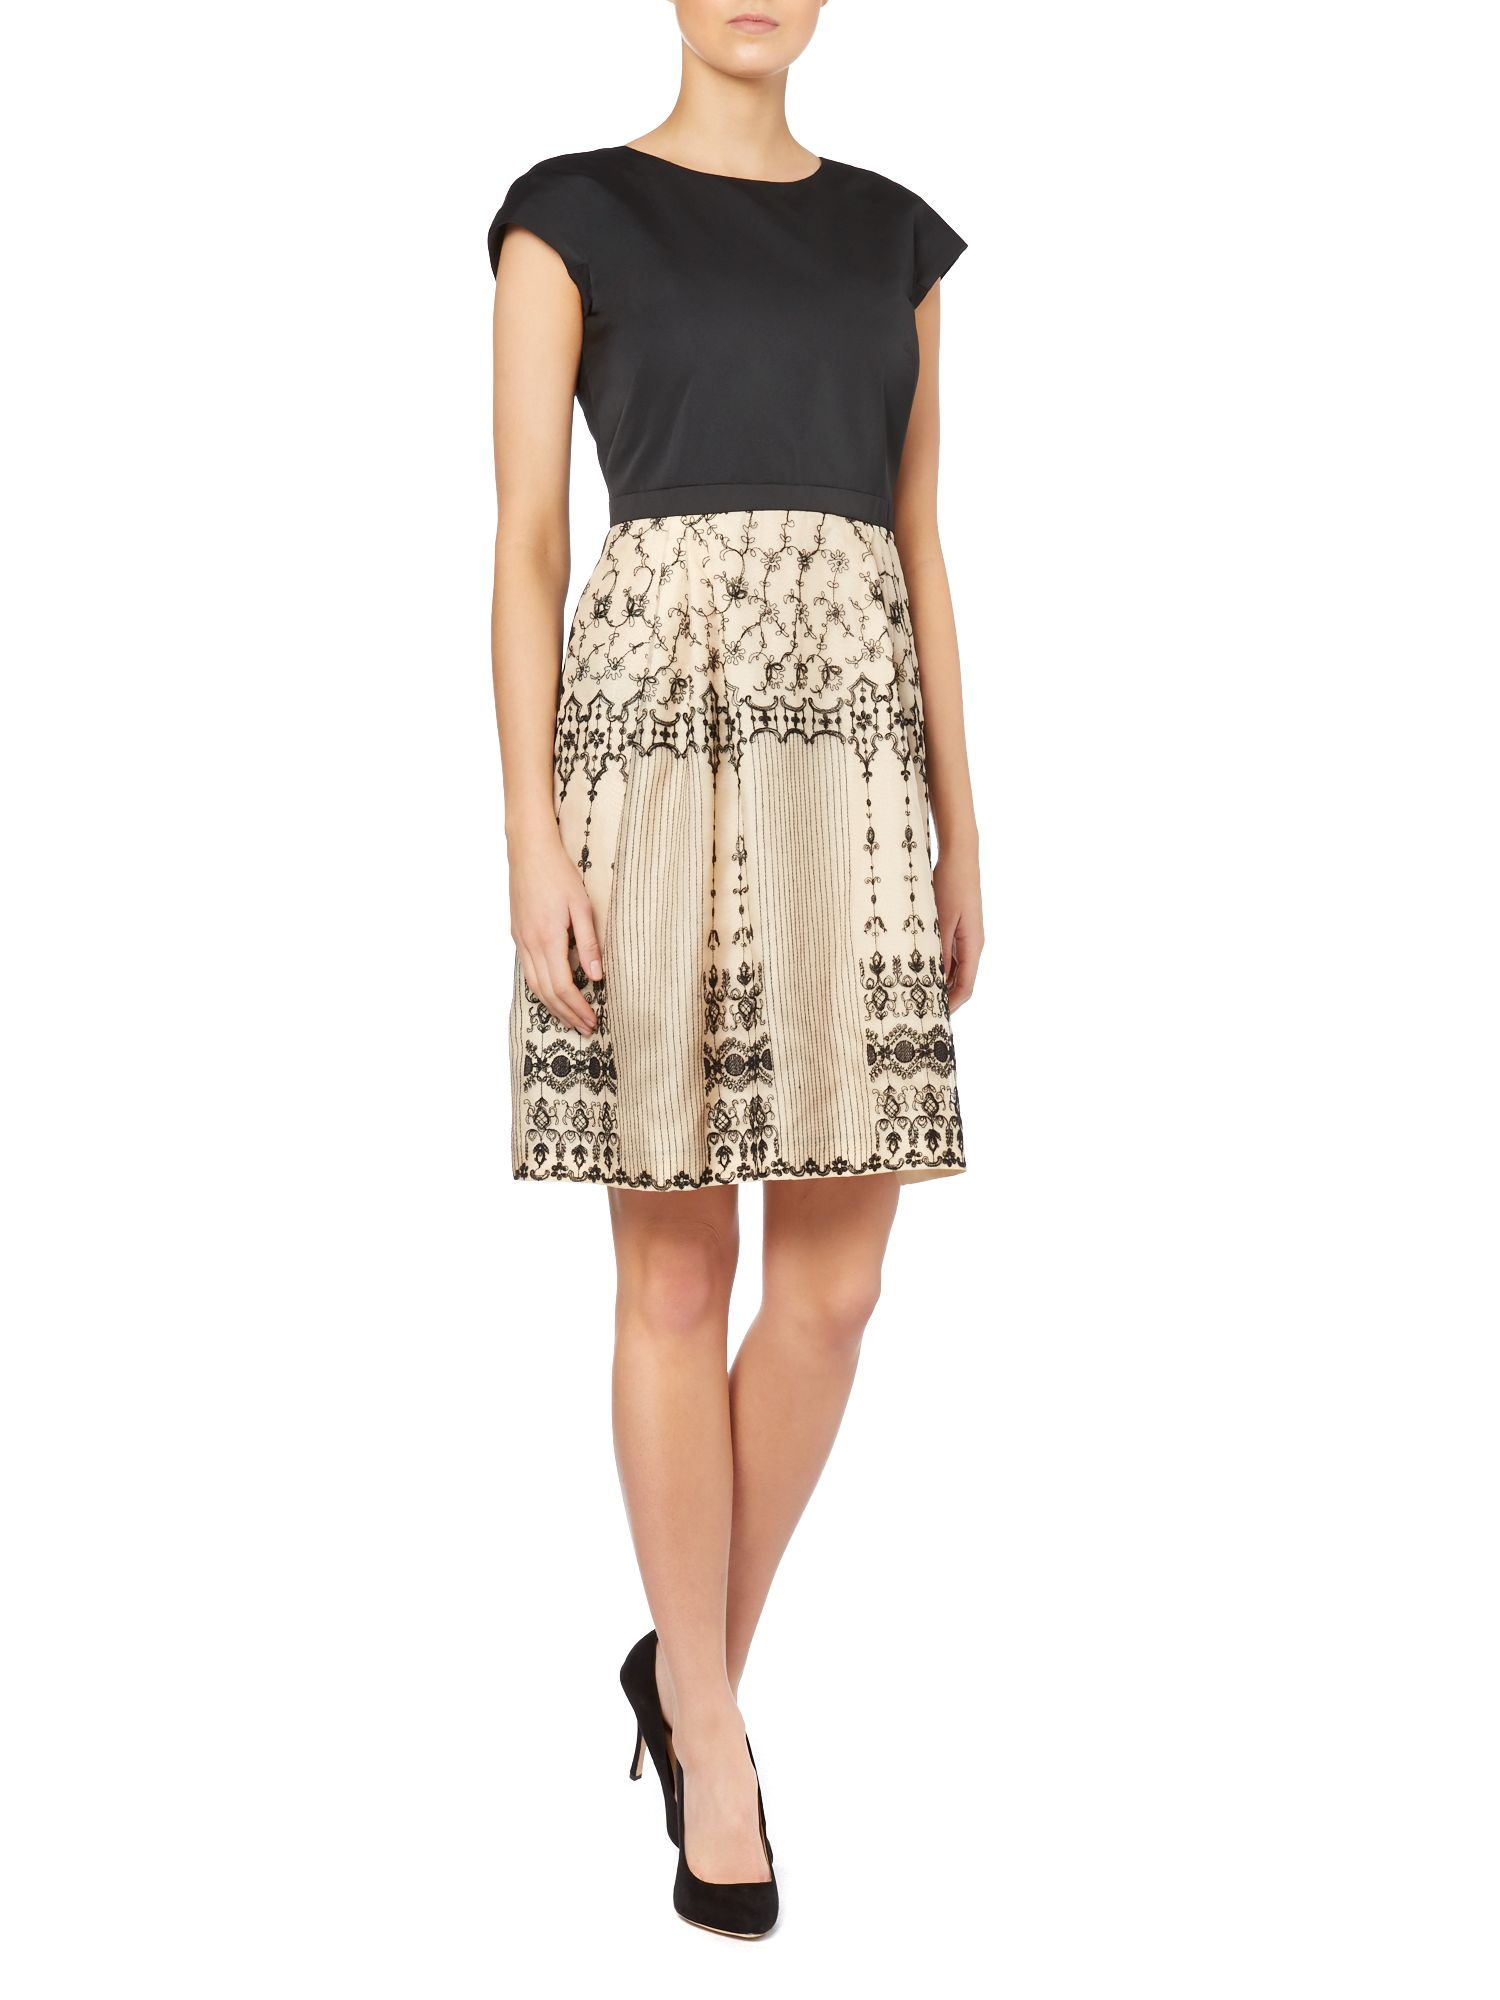 Patner a line dress with lace skirt